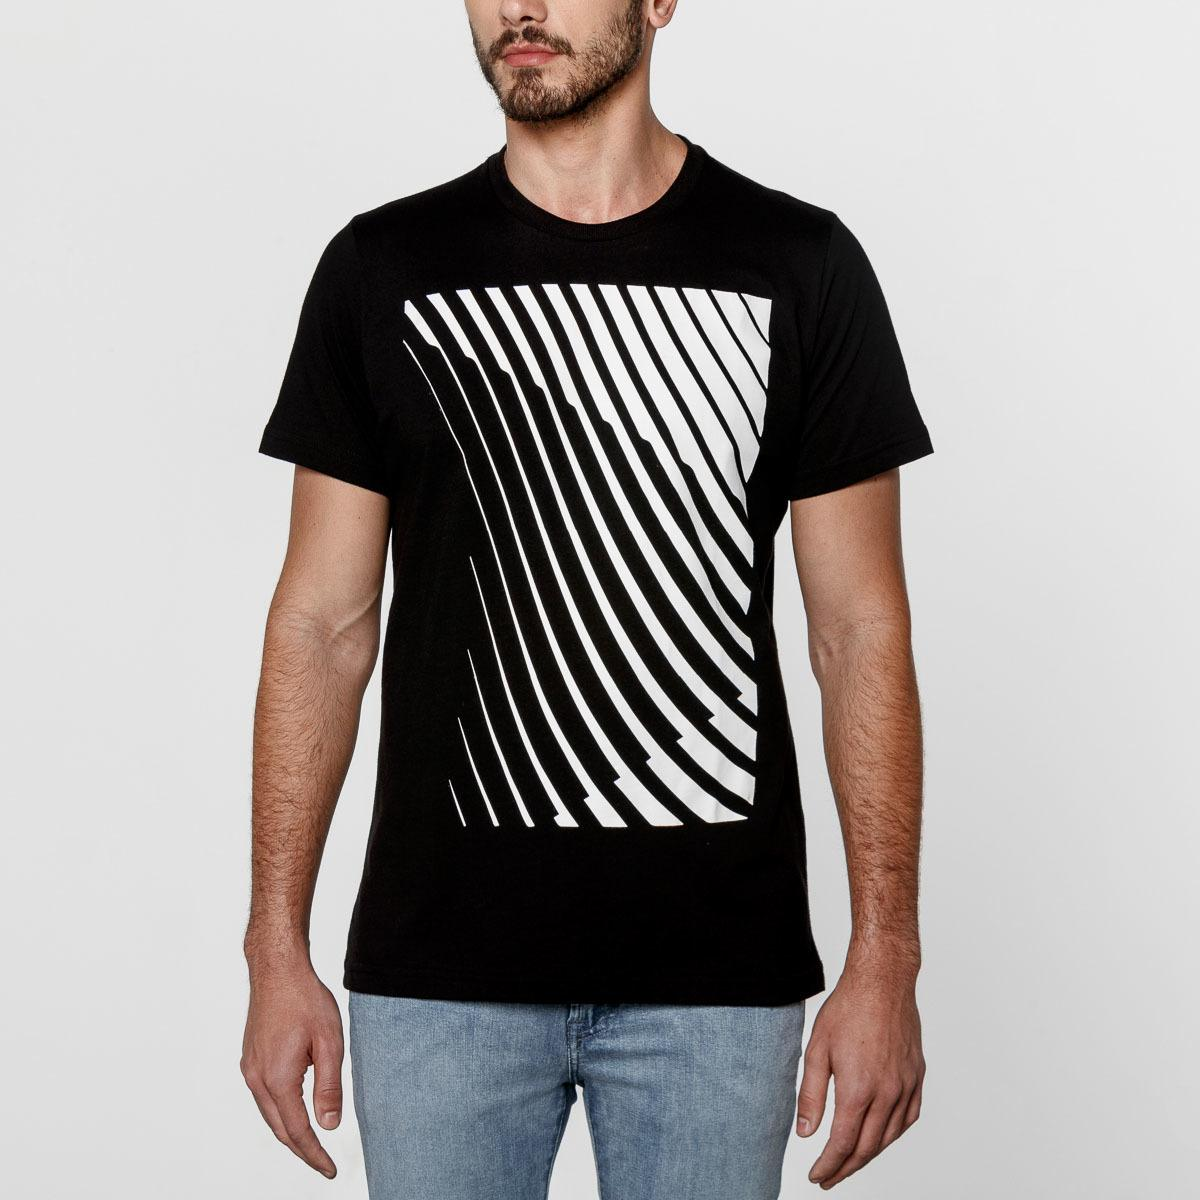 Camiseta Tresano Waves Slim Fit